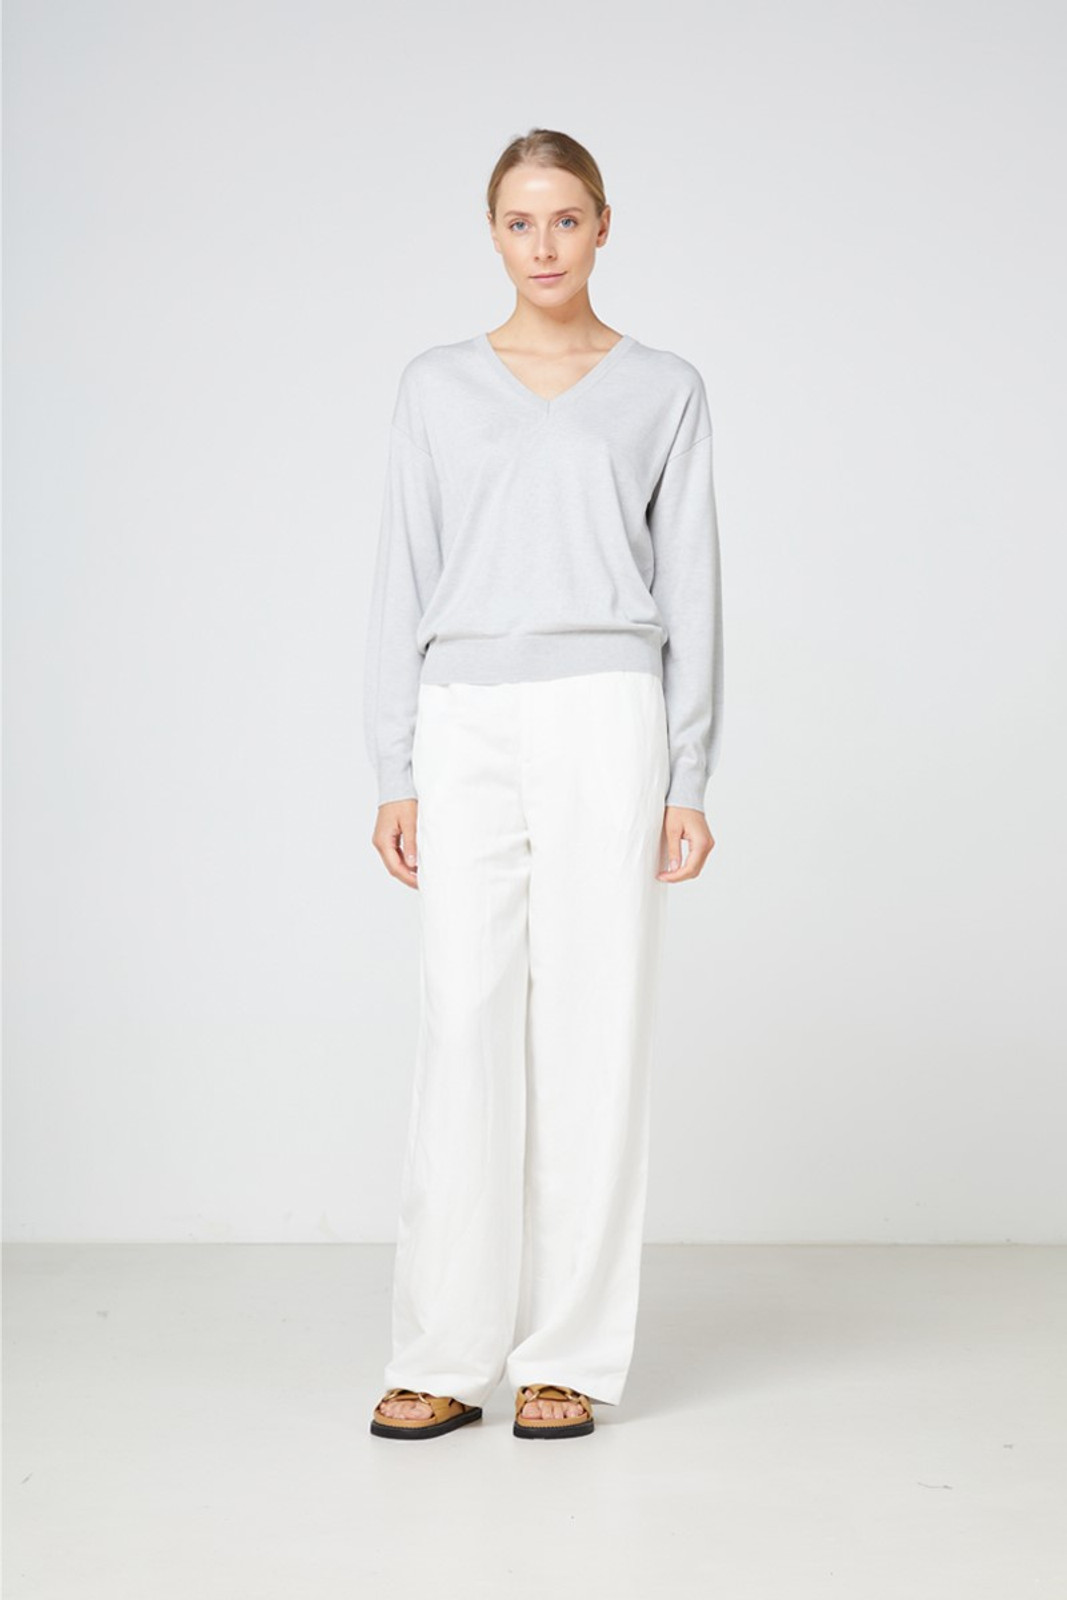 Elka Collective Isola Knit Blue  0